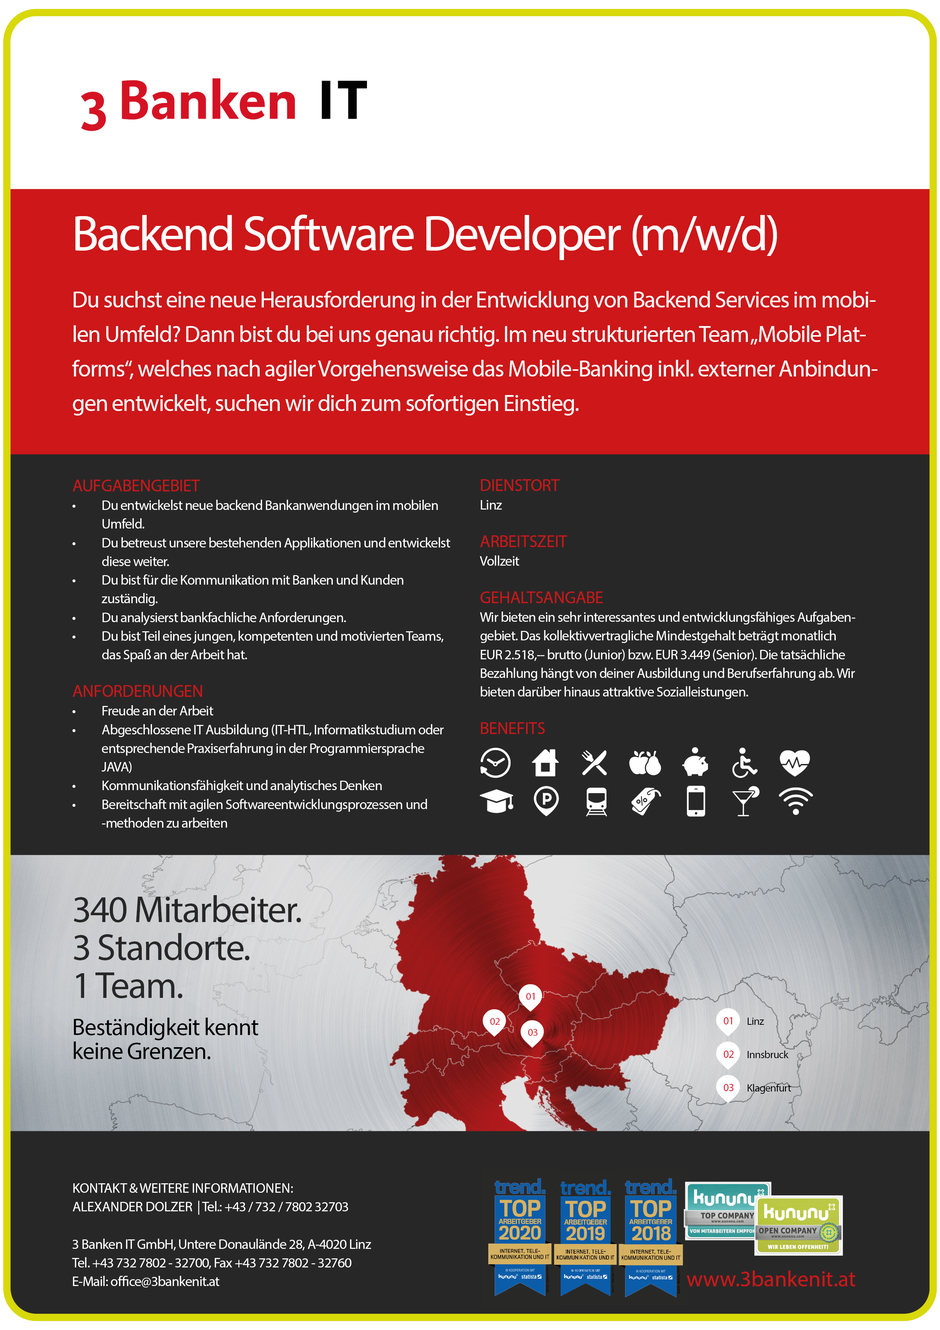 Software Developer Jobs - Backend Software Developer - 3 Banken IT GmbH - Linz - Oberösterreich - 1